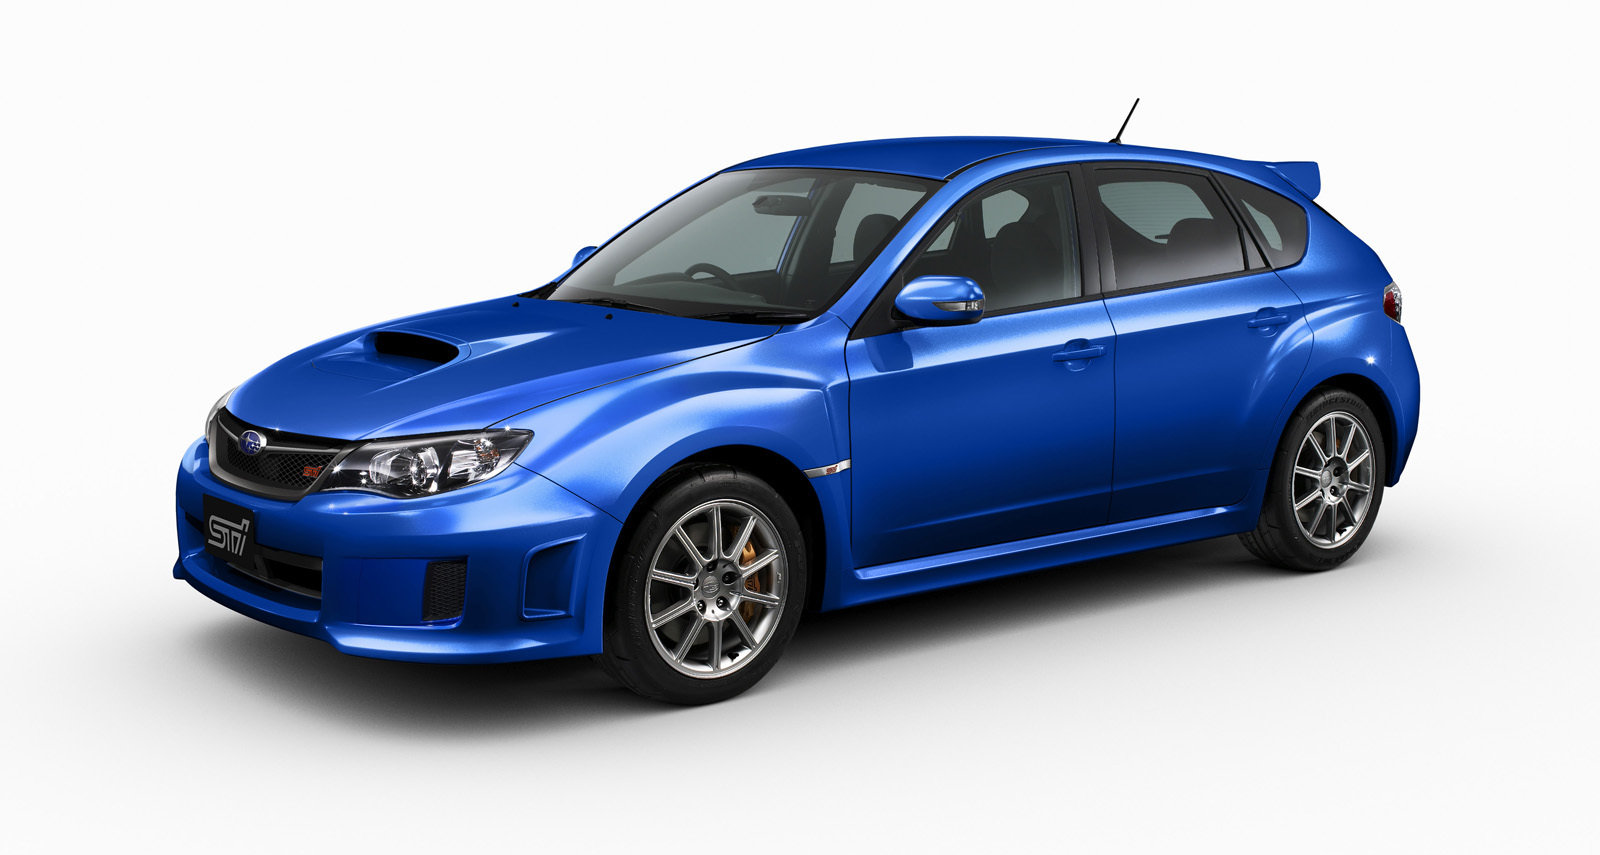 2011 subaru impreza wrx sti spec c review top speed. Black Bedroom Furniture Sets. Home Design Ideas